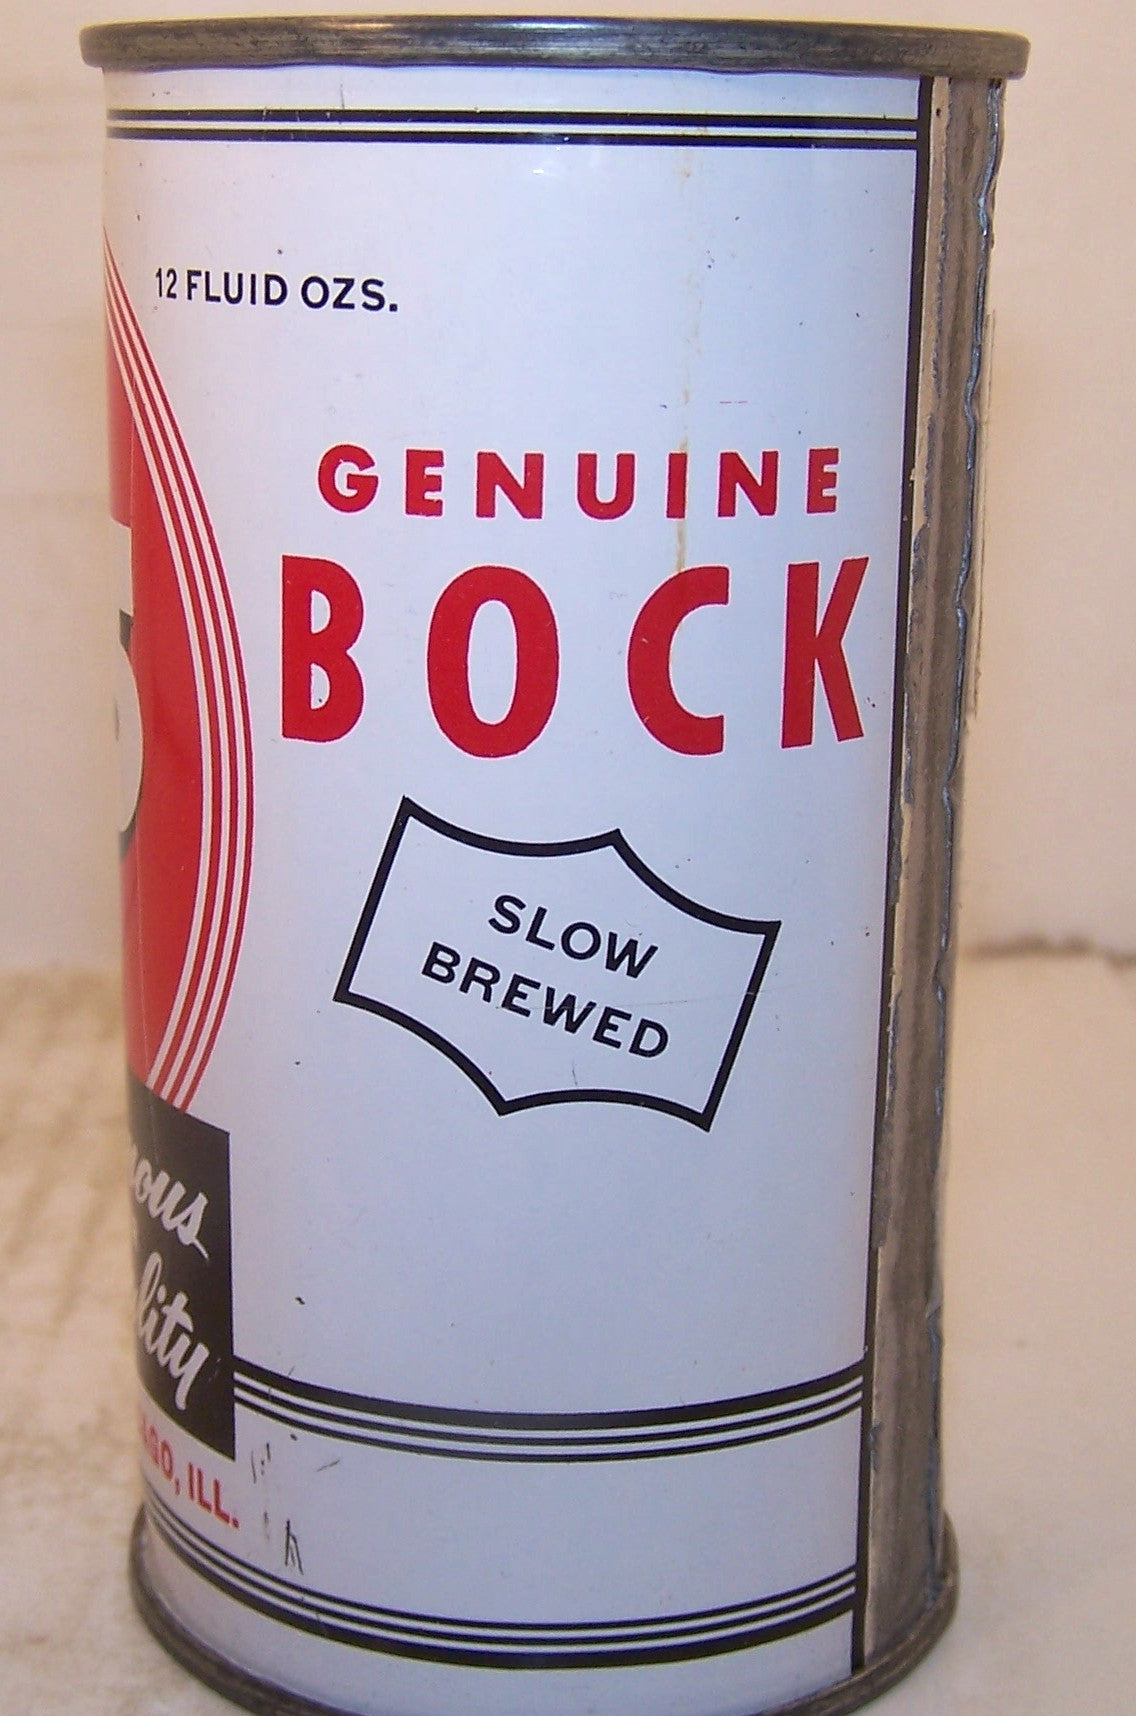 9-0-5 Bock Beer, USBC 103-21, Grade 1/1+ Traded on 2/22/15